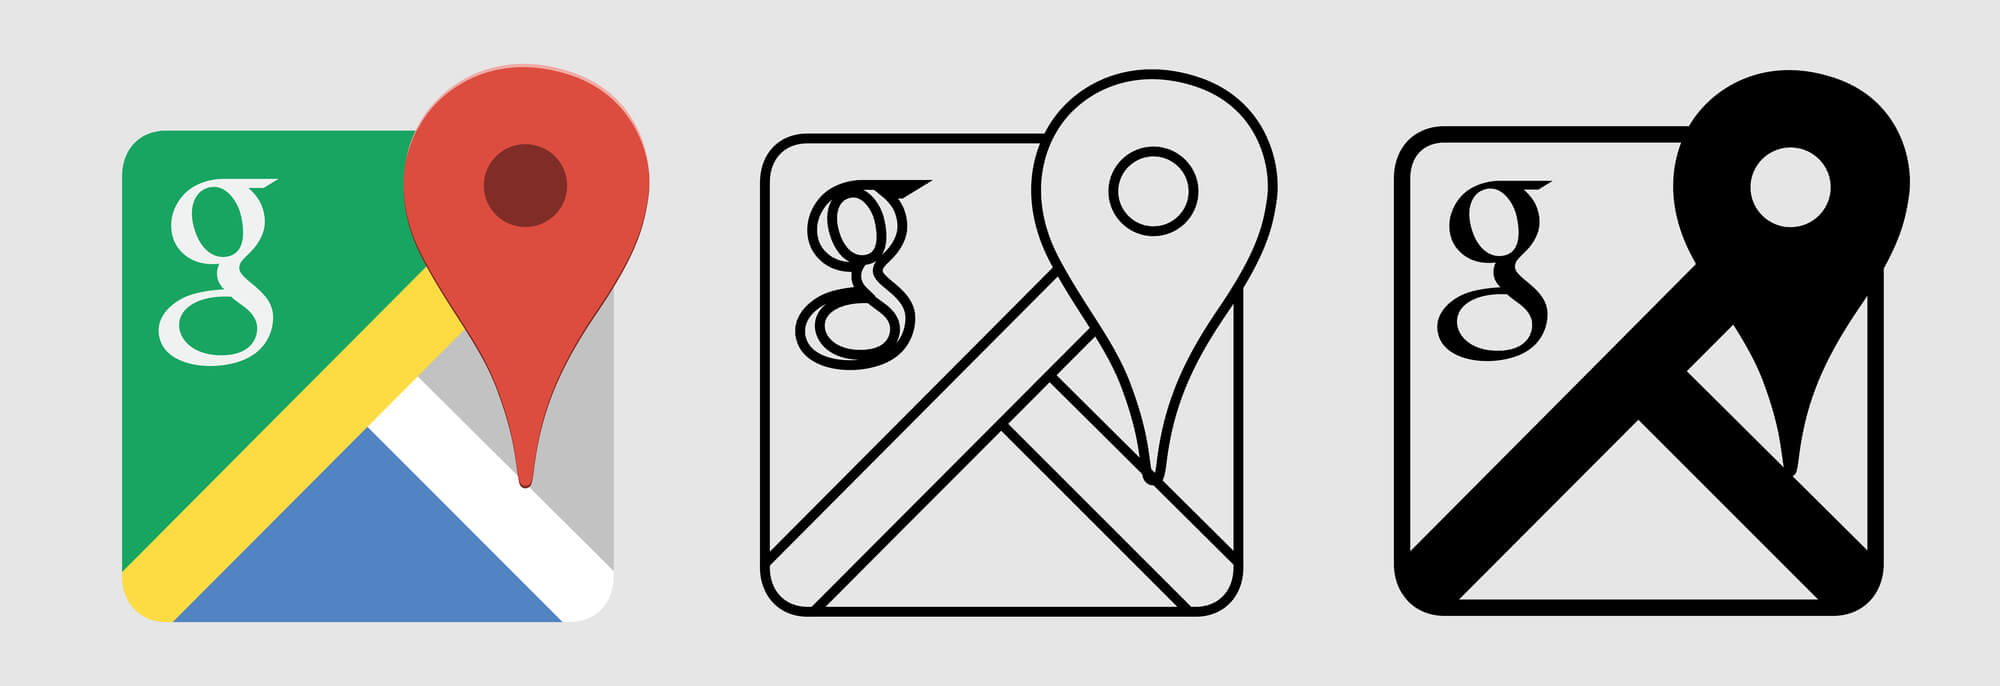 google-maps-different-icons